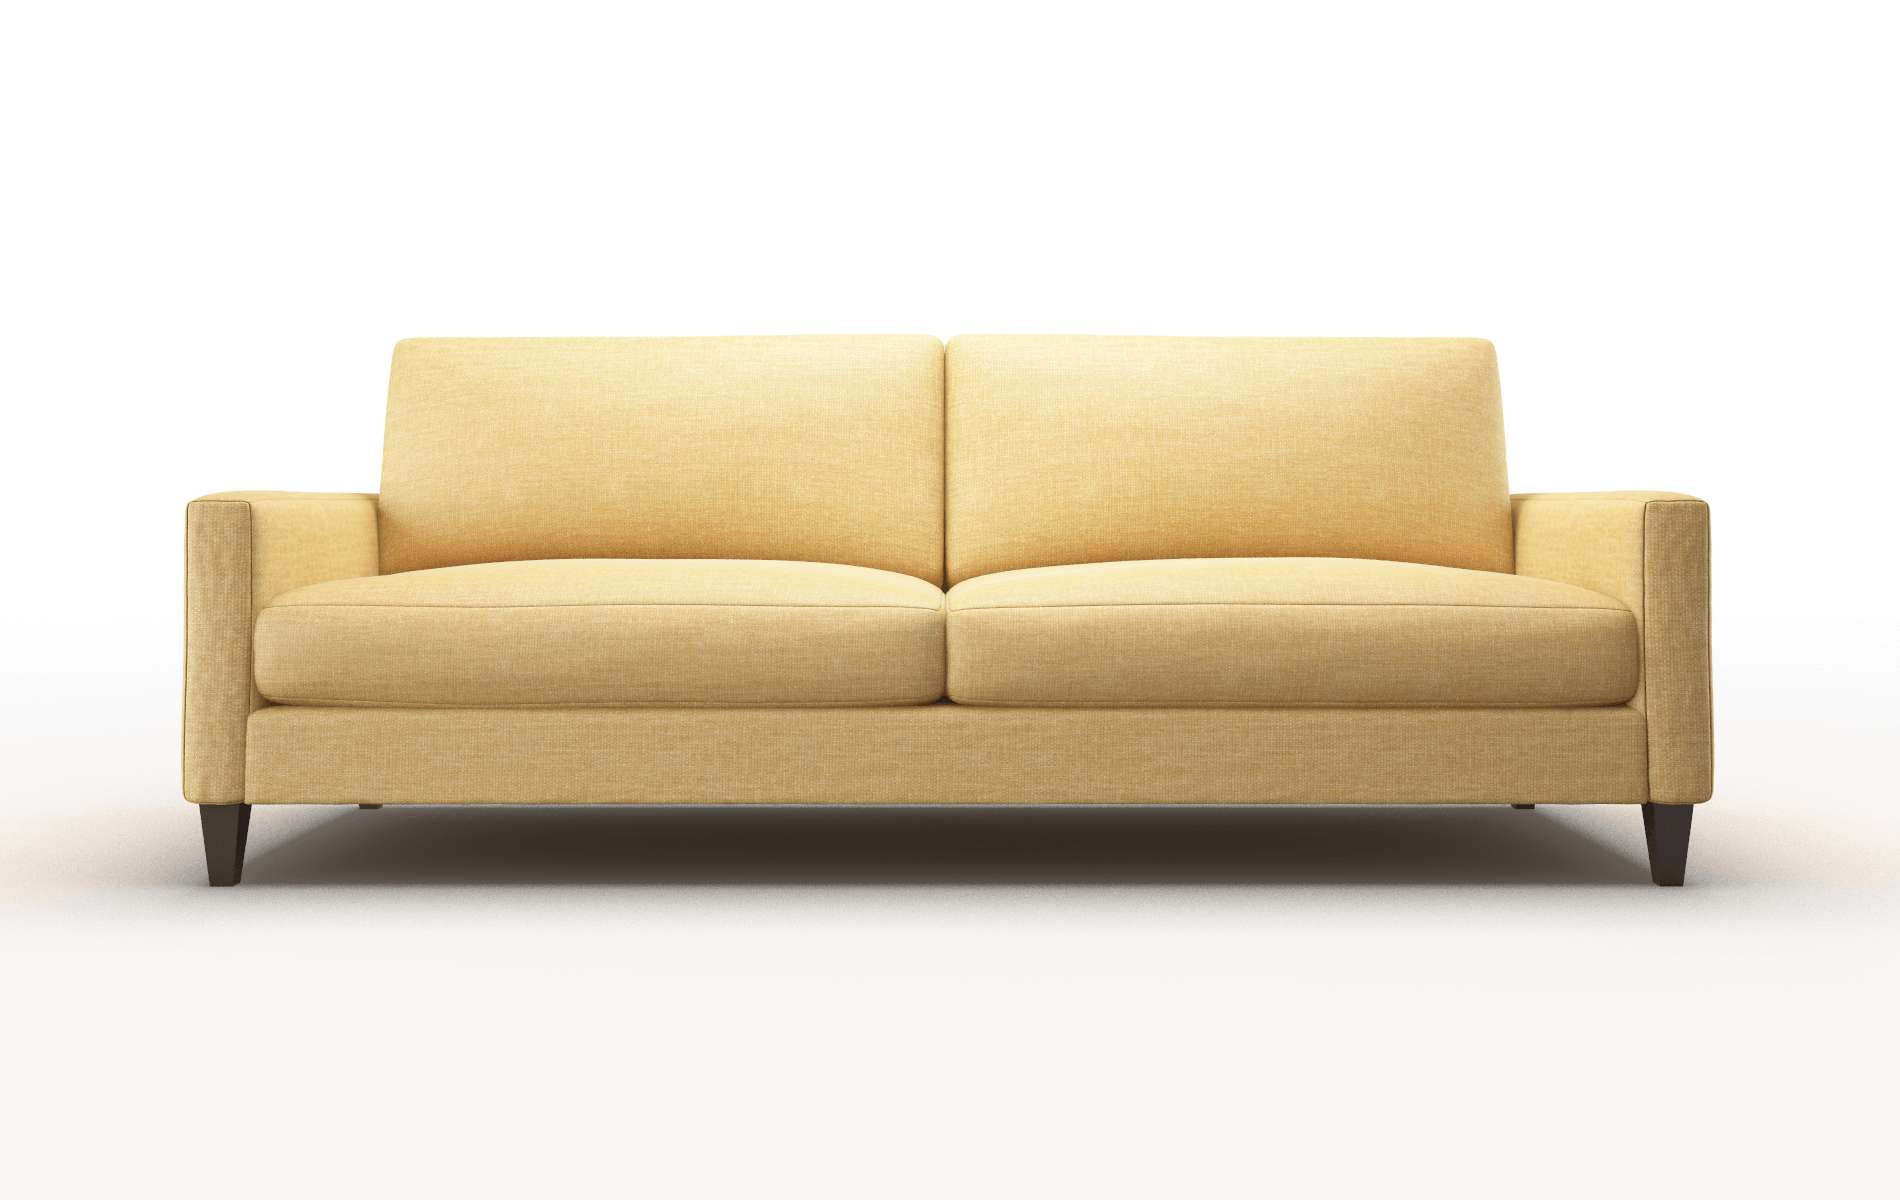 Cannes Keylargo Honey Sofa espresso legs 1